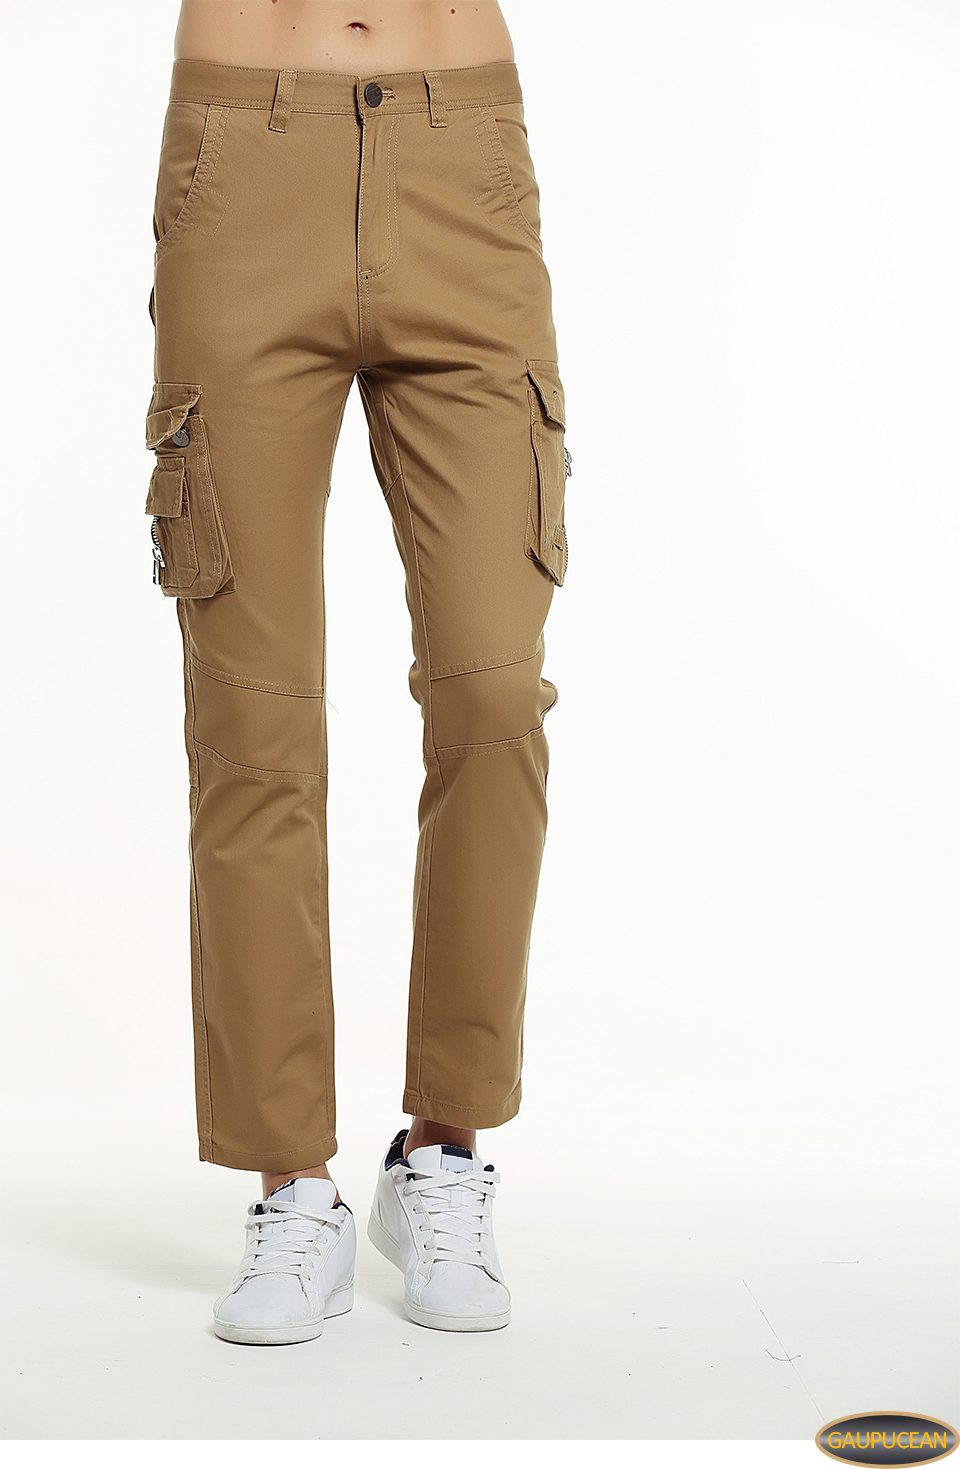 attractive colour discount top-rated 2019 Gaupucean Man Cotton Straight Casual Trousers Quality Army Green Khaki  Black Full Length Pockets Fashion Men Chino Cargo Pants From Dhmfashion, ...